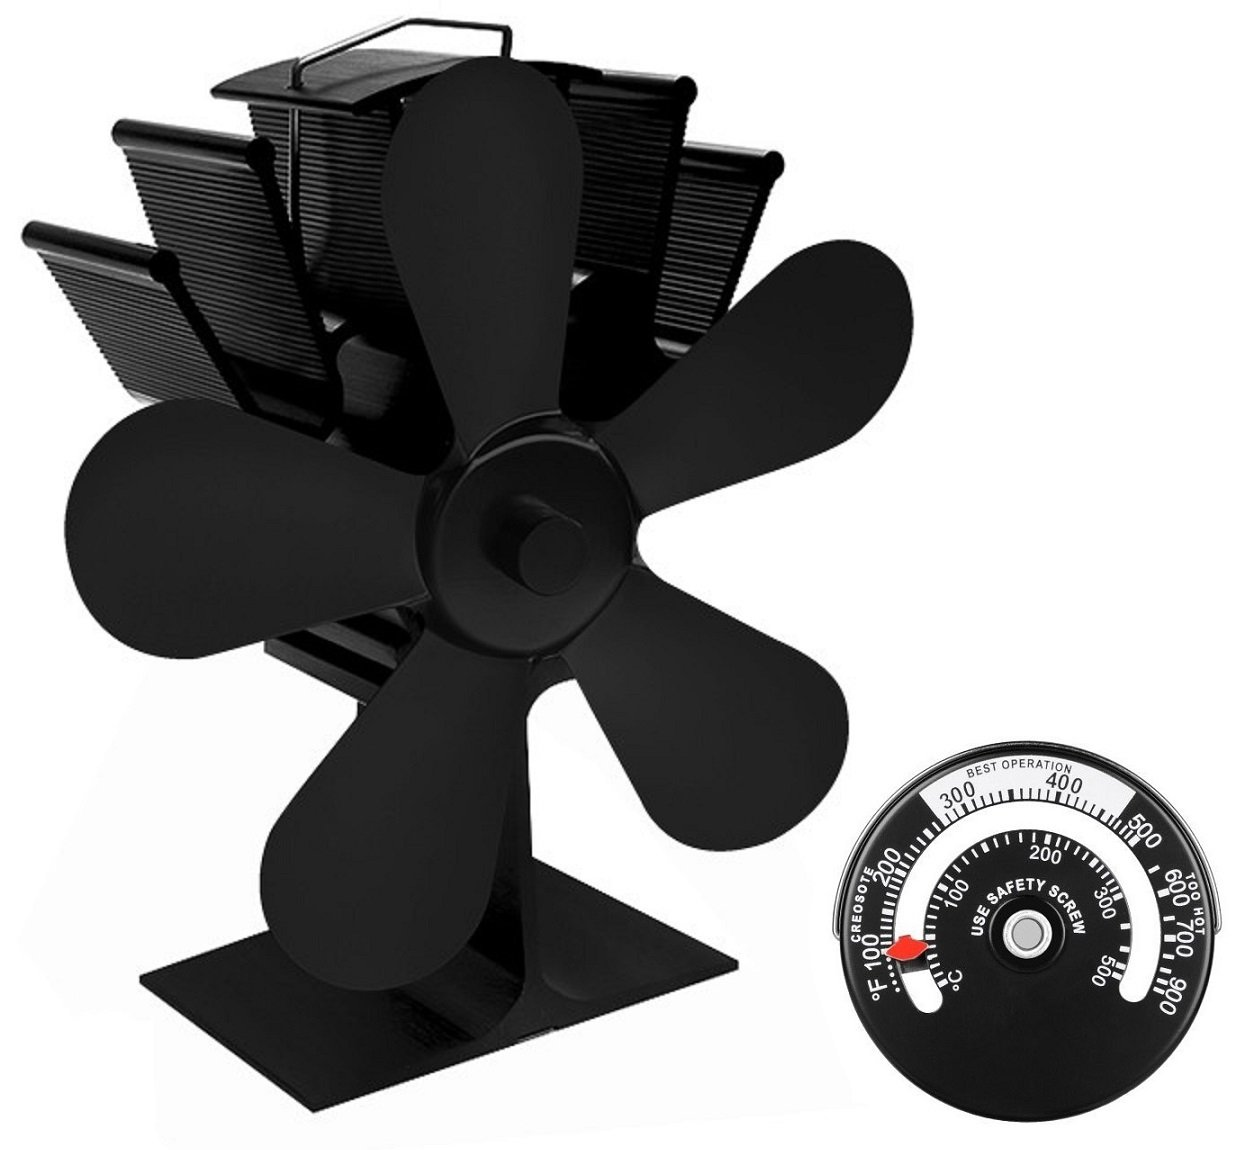 GRN Home Heat Powered Stove Fan with Magnetic Thermometer | 5 Blades - Aluminium Silent Eco-friendly for Wood Log Burner Fireplace